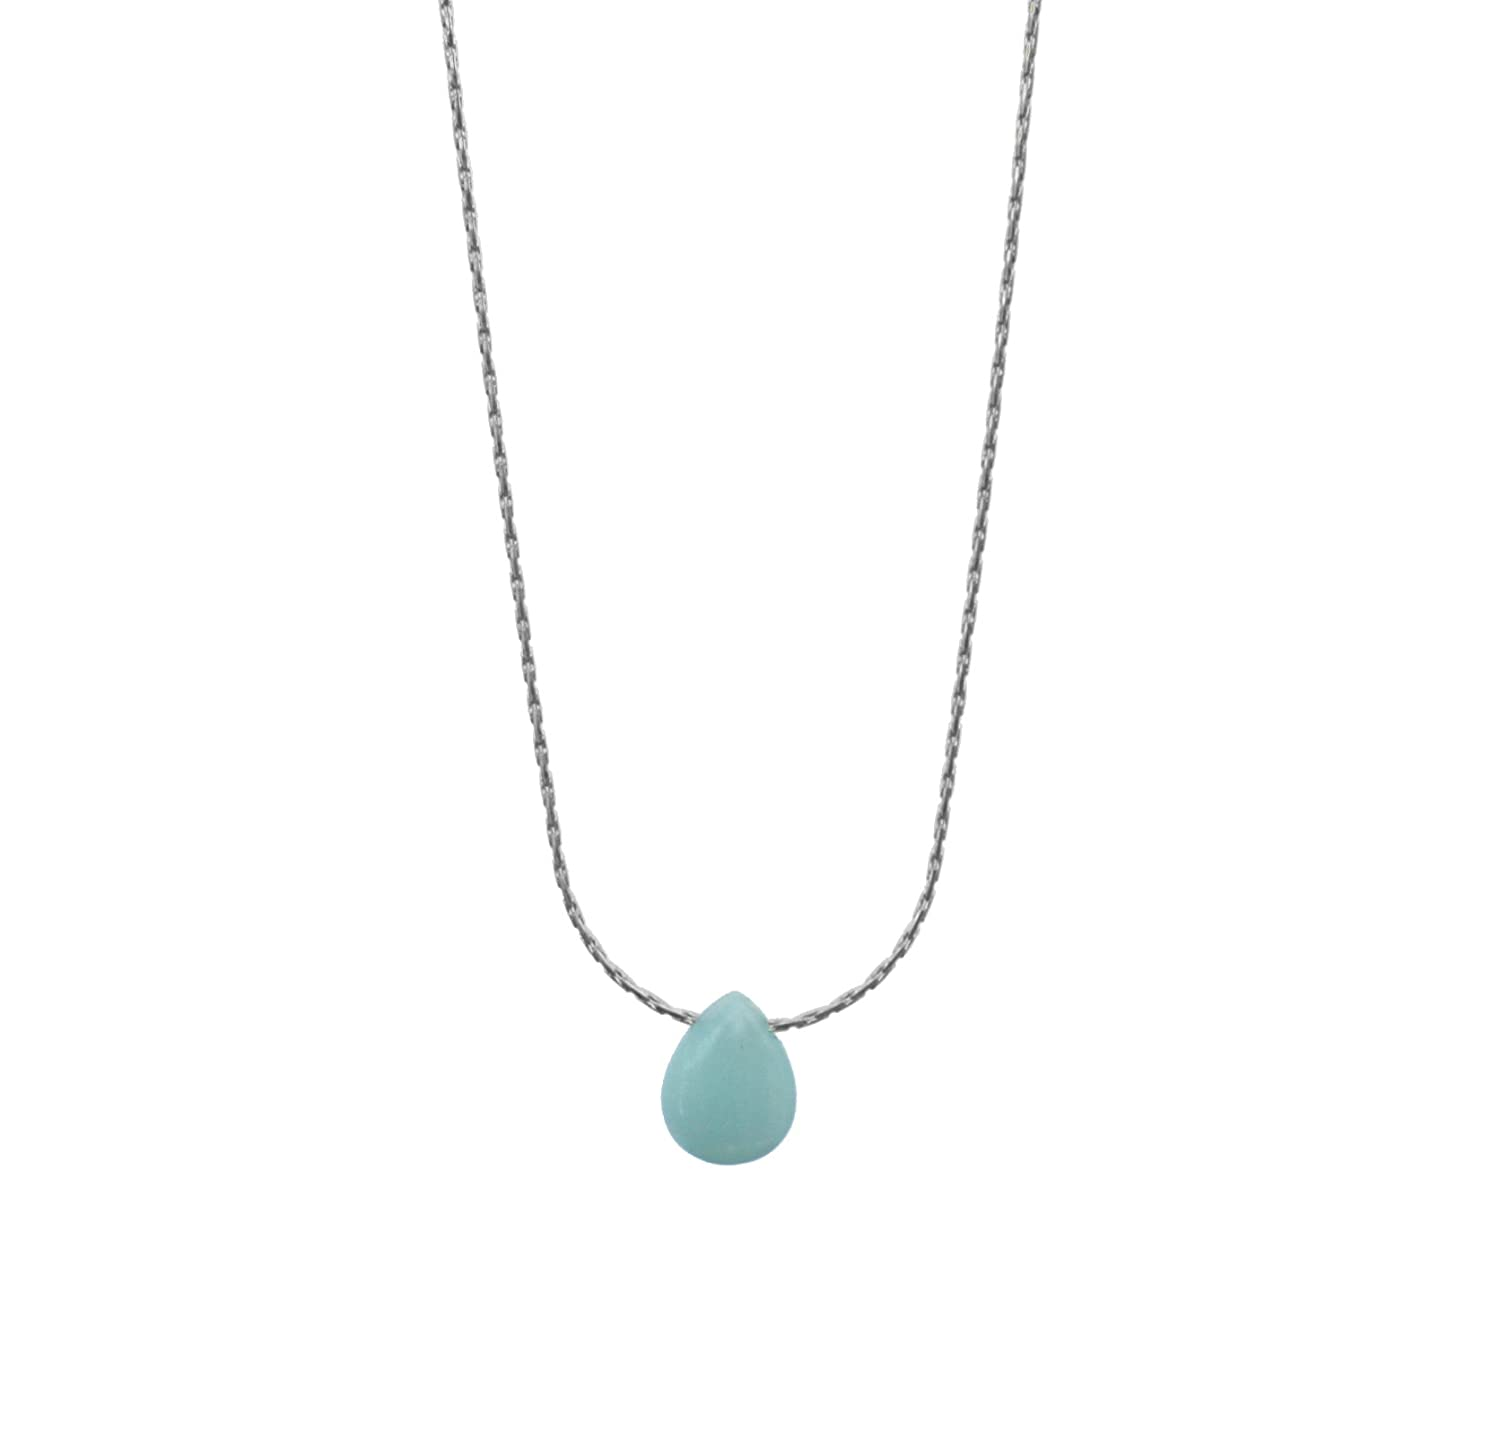 delicate jewelry Blue jade necklace silver plated birth stone Handmade in California gemstones minimalist